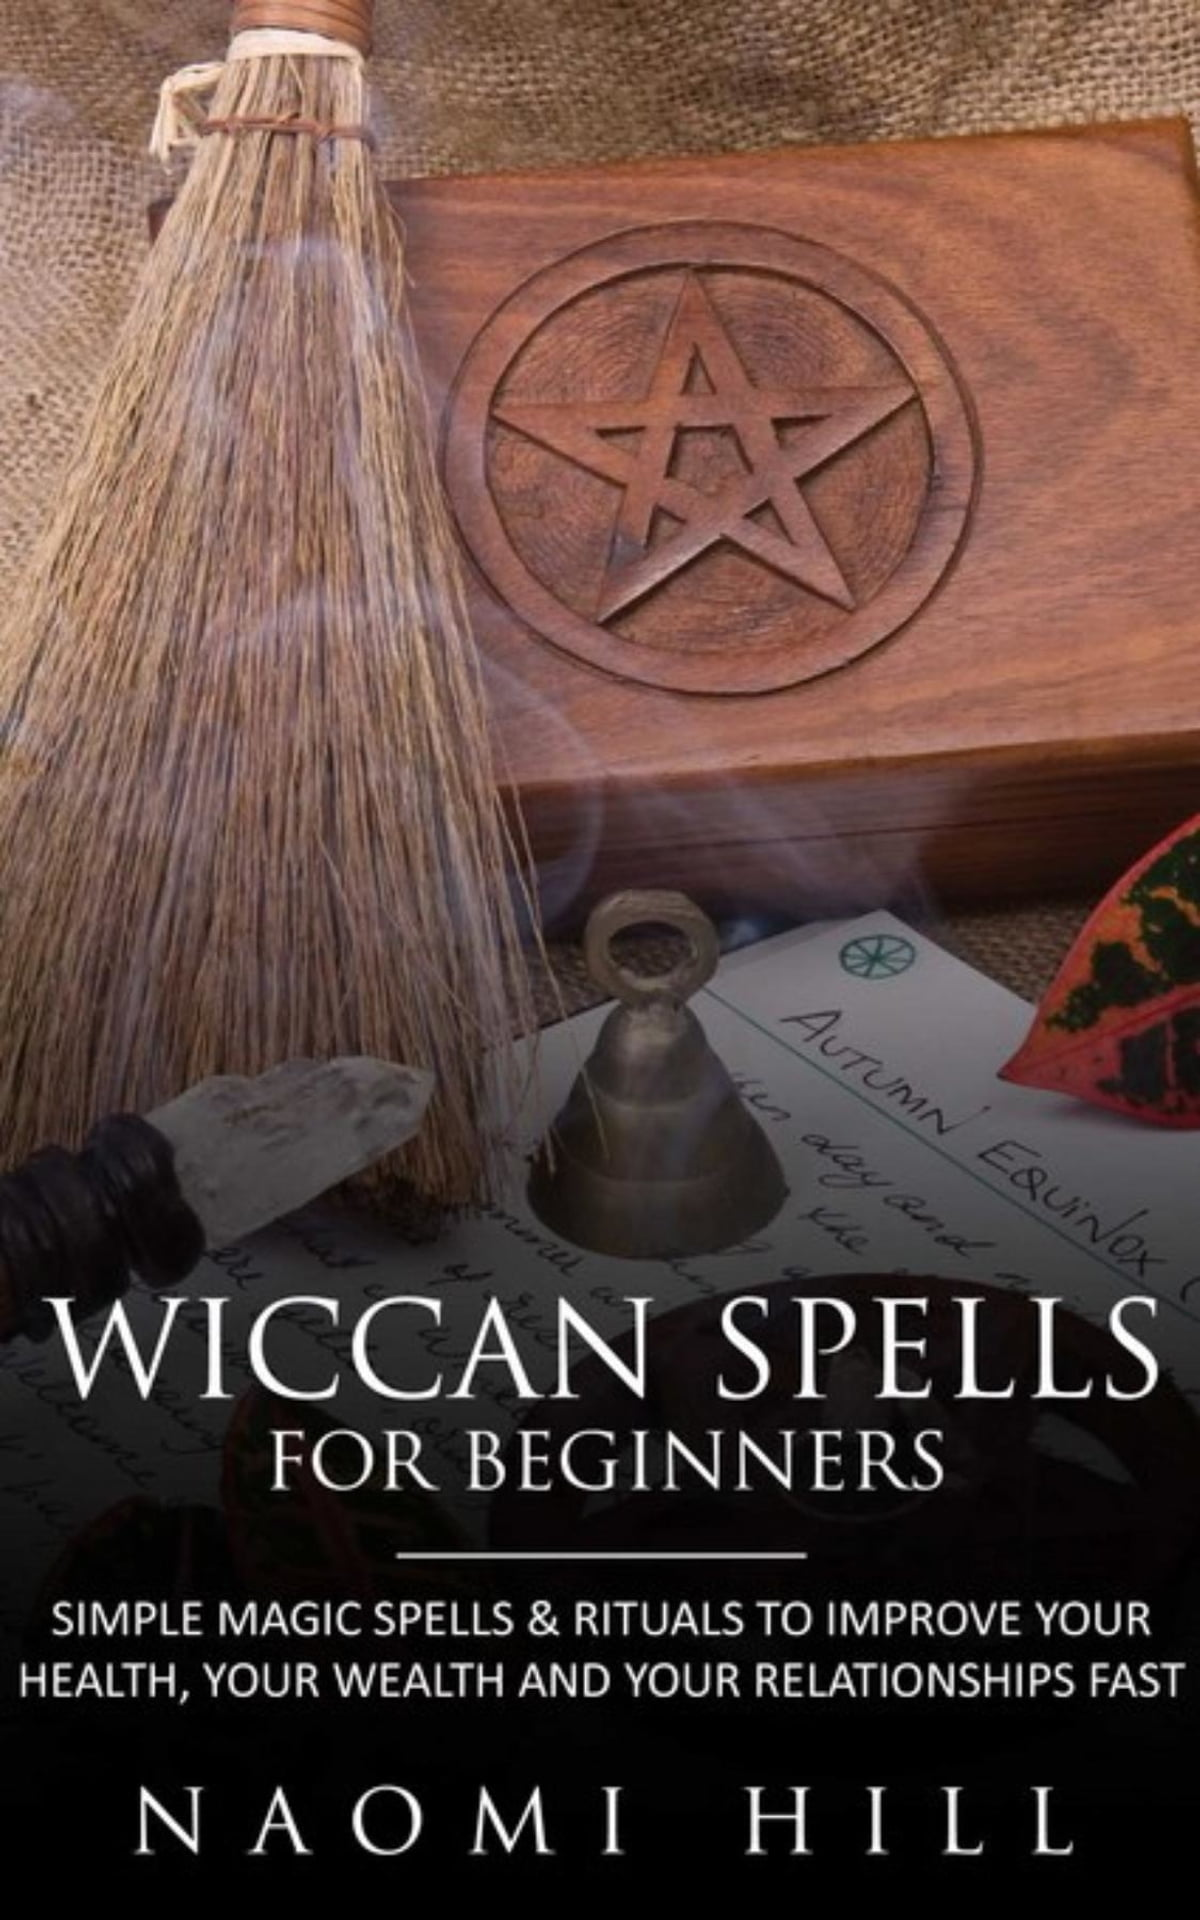 Wiccan Spells for beginners eBook by Hill Naomi   9781628840353     Wiccan Spells for beginners eBook by Hill Naomi   9781628840353   Rakuten  Kobo